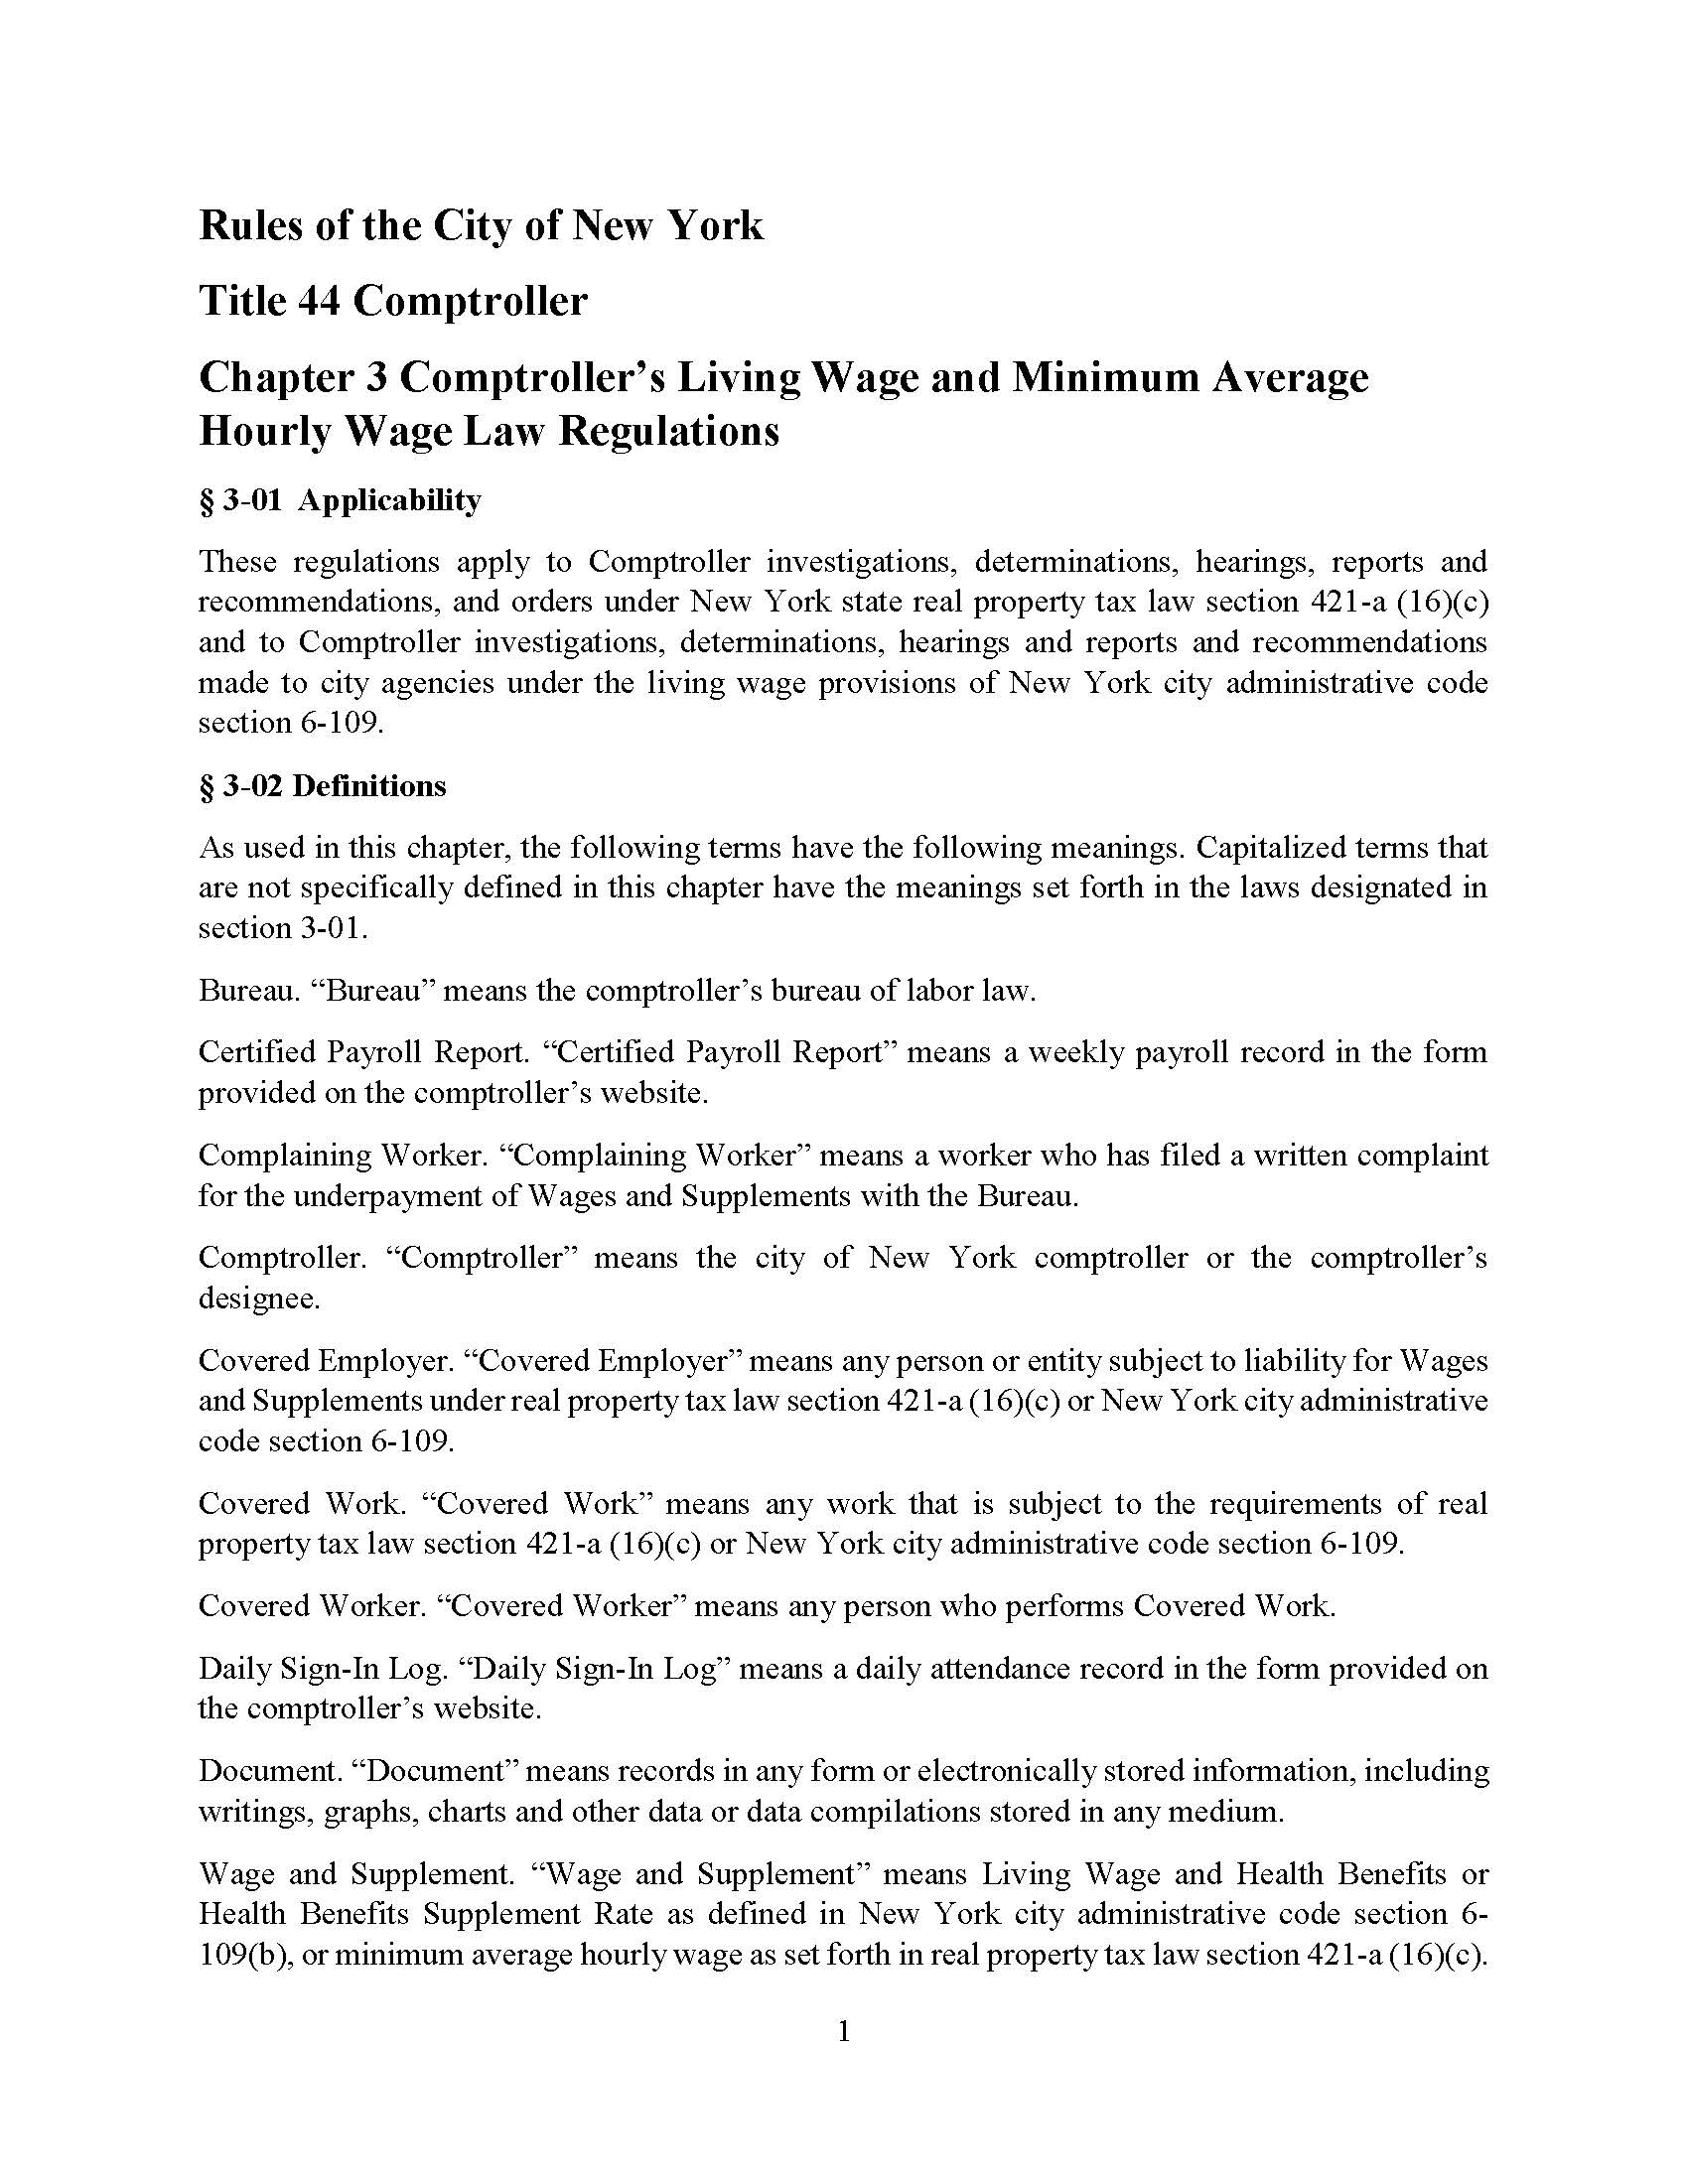 Comptrollers Living Wage And Minimum Average Hourly Law Regulations